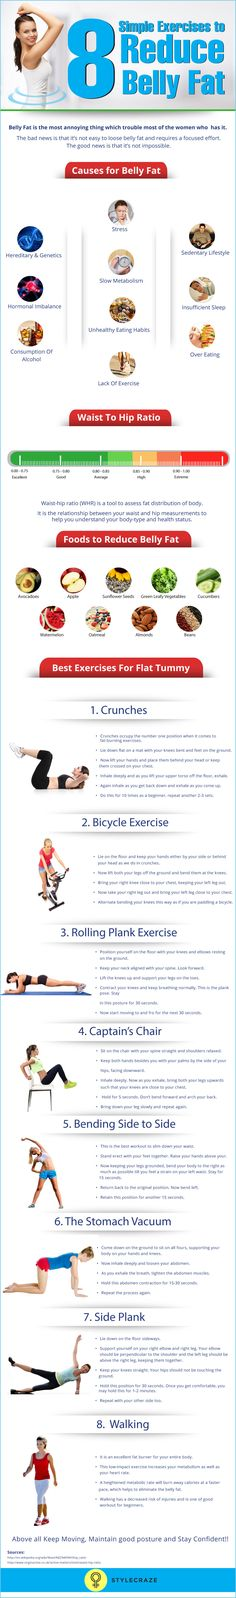 Losing belly fat is really a big task. Including exercises to reduce belly fat for women helps the best. Here is how to lose stomach fat with these simple exercises